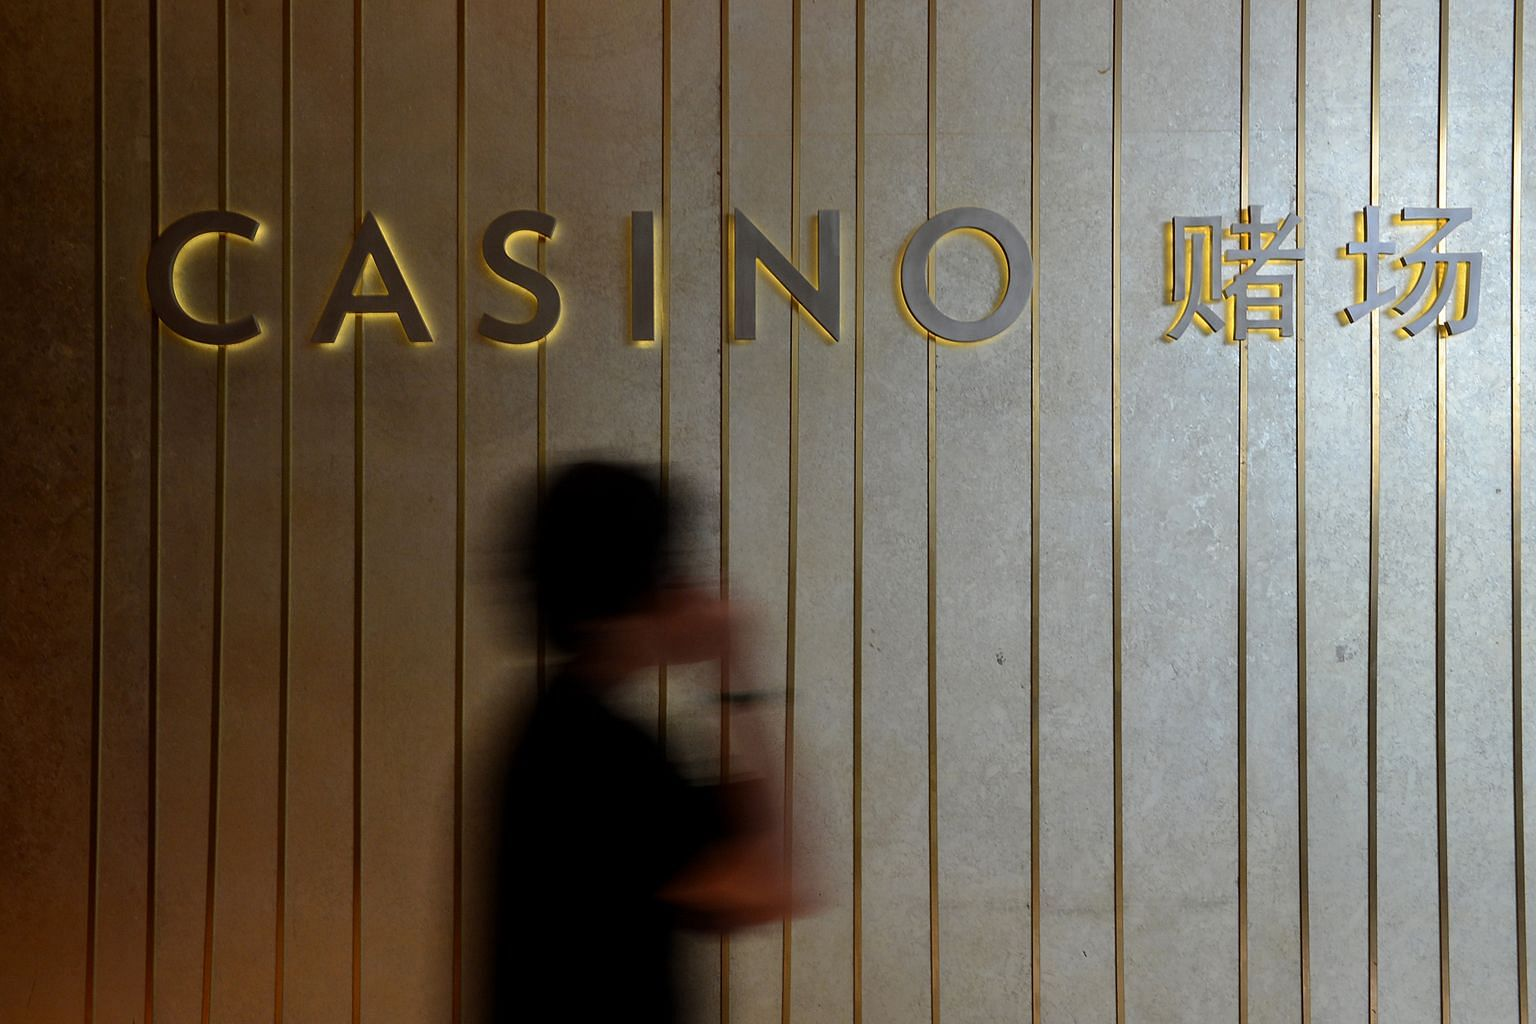 Casino revenues fell 21 per cent to US$532.9 million in the quarter, due in part to a drop in win percentage in the VIP segment, which was 2.39 per cent, compared with 3.58 per cent in the same quarter last year.